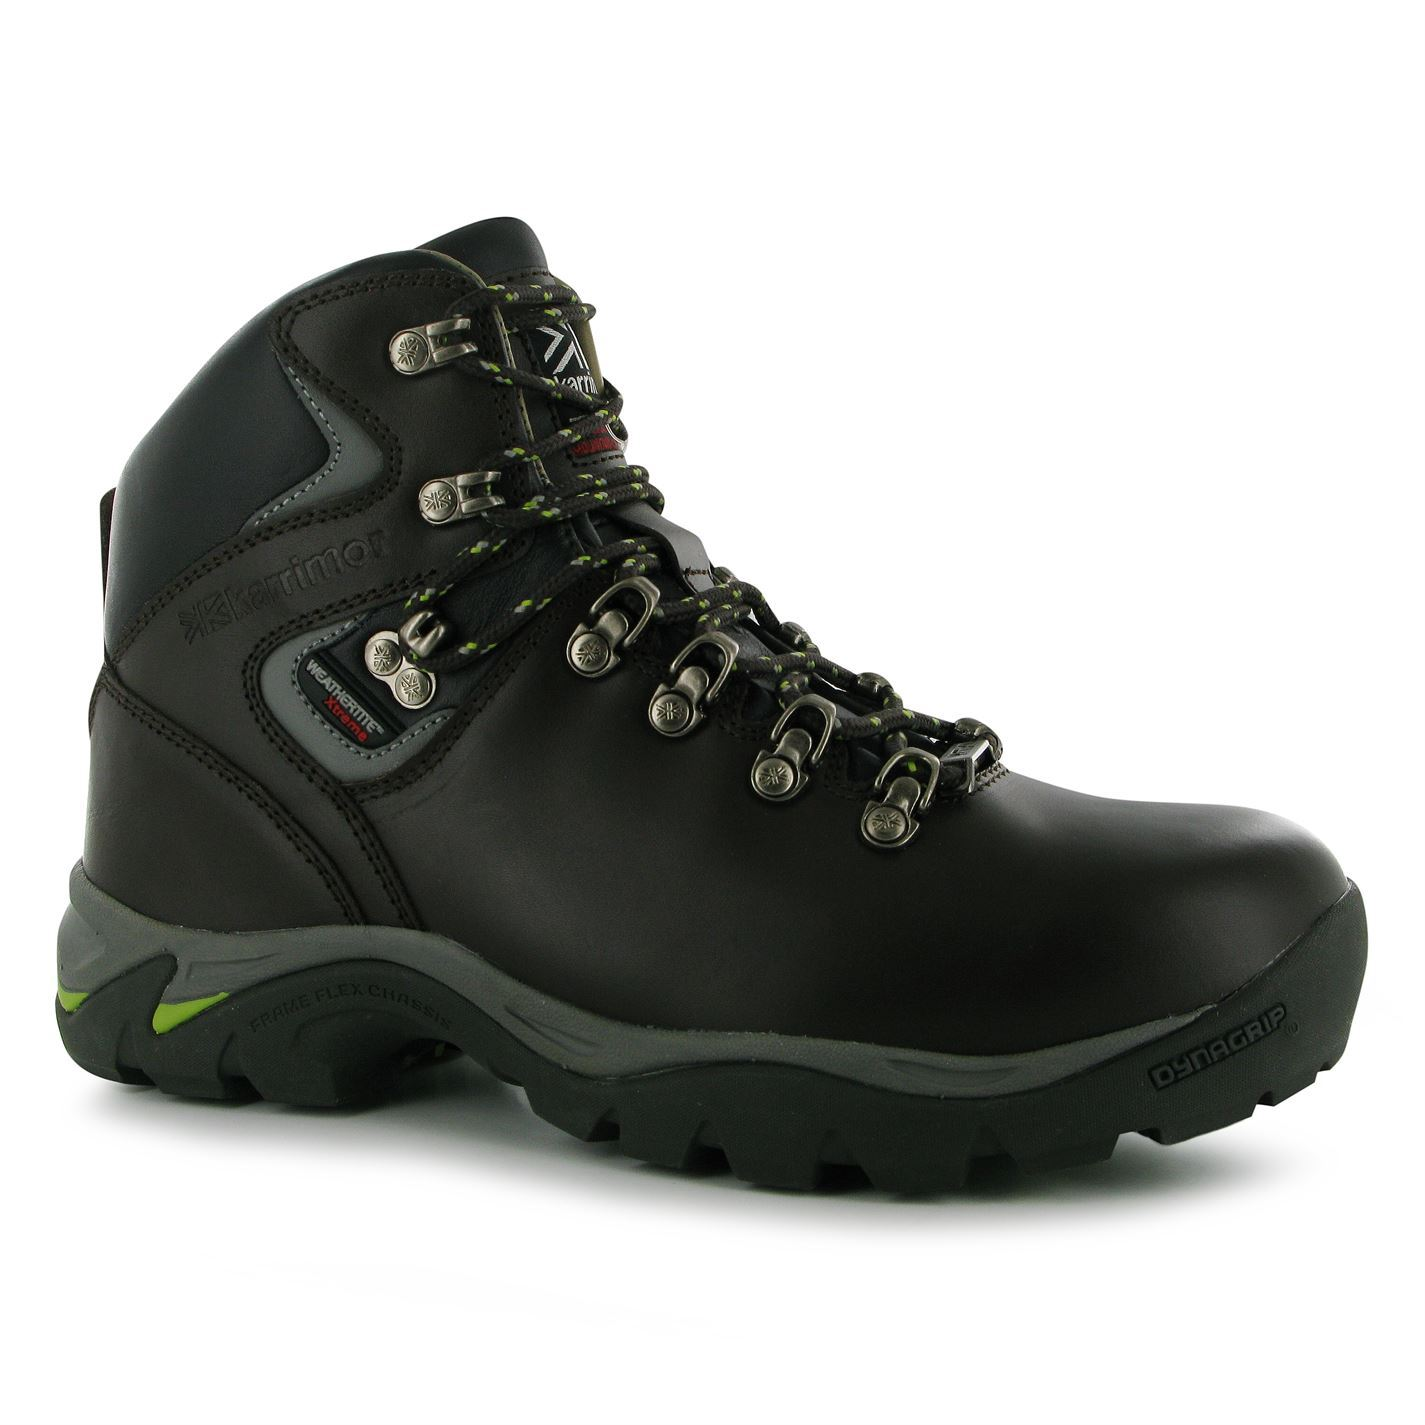 Karrimor-Skido-Hiking-Leather-Walking-Boots-Lace-Up-Ladies